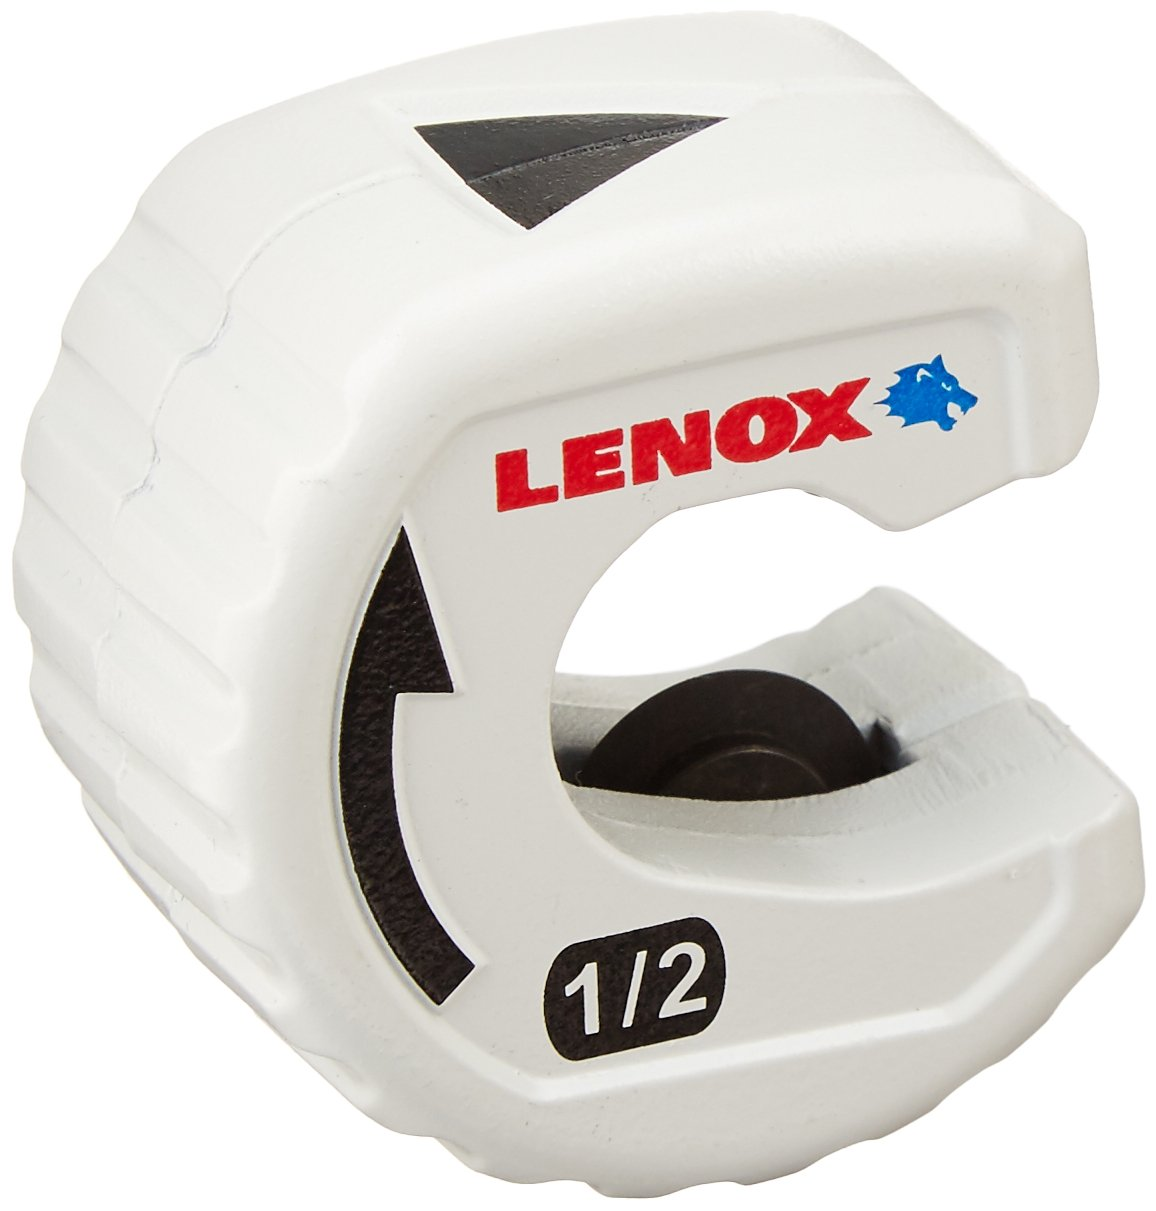 LENOX Tools Tight-Spot Tubing Cutter, 1/2-inch (14830TS12)